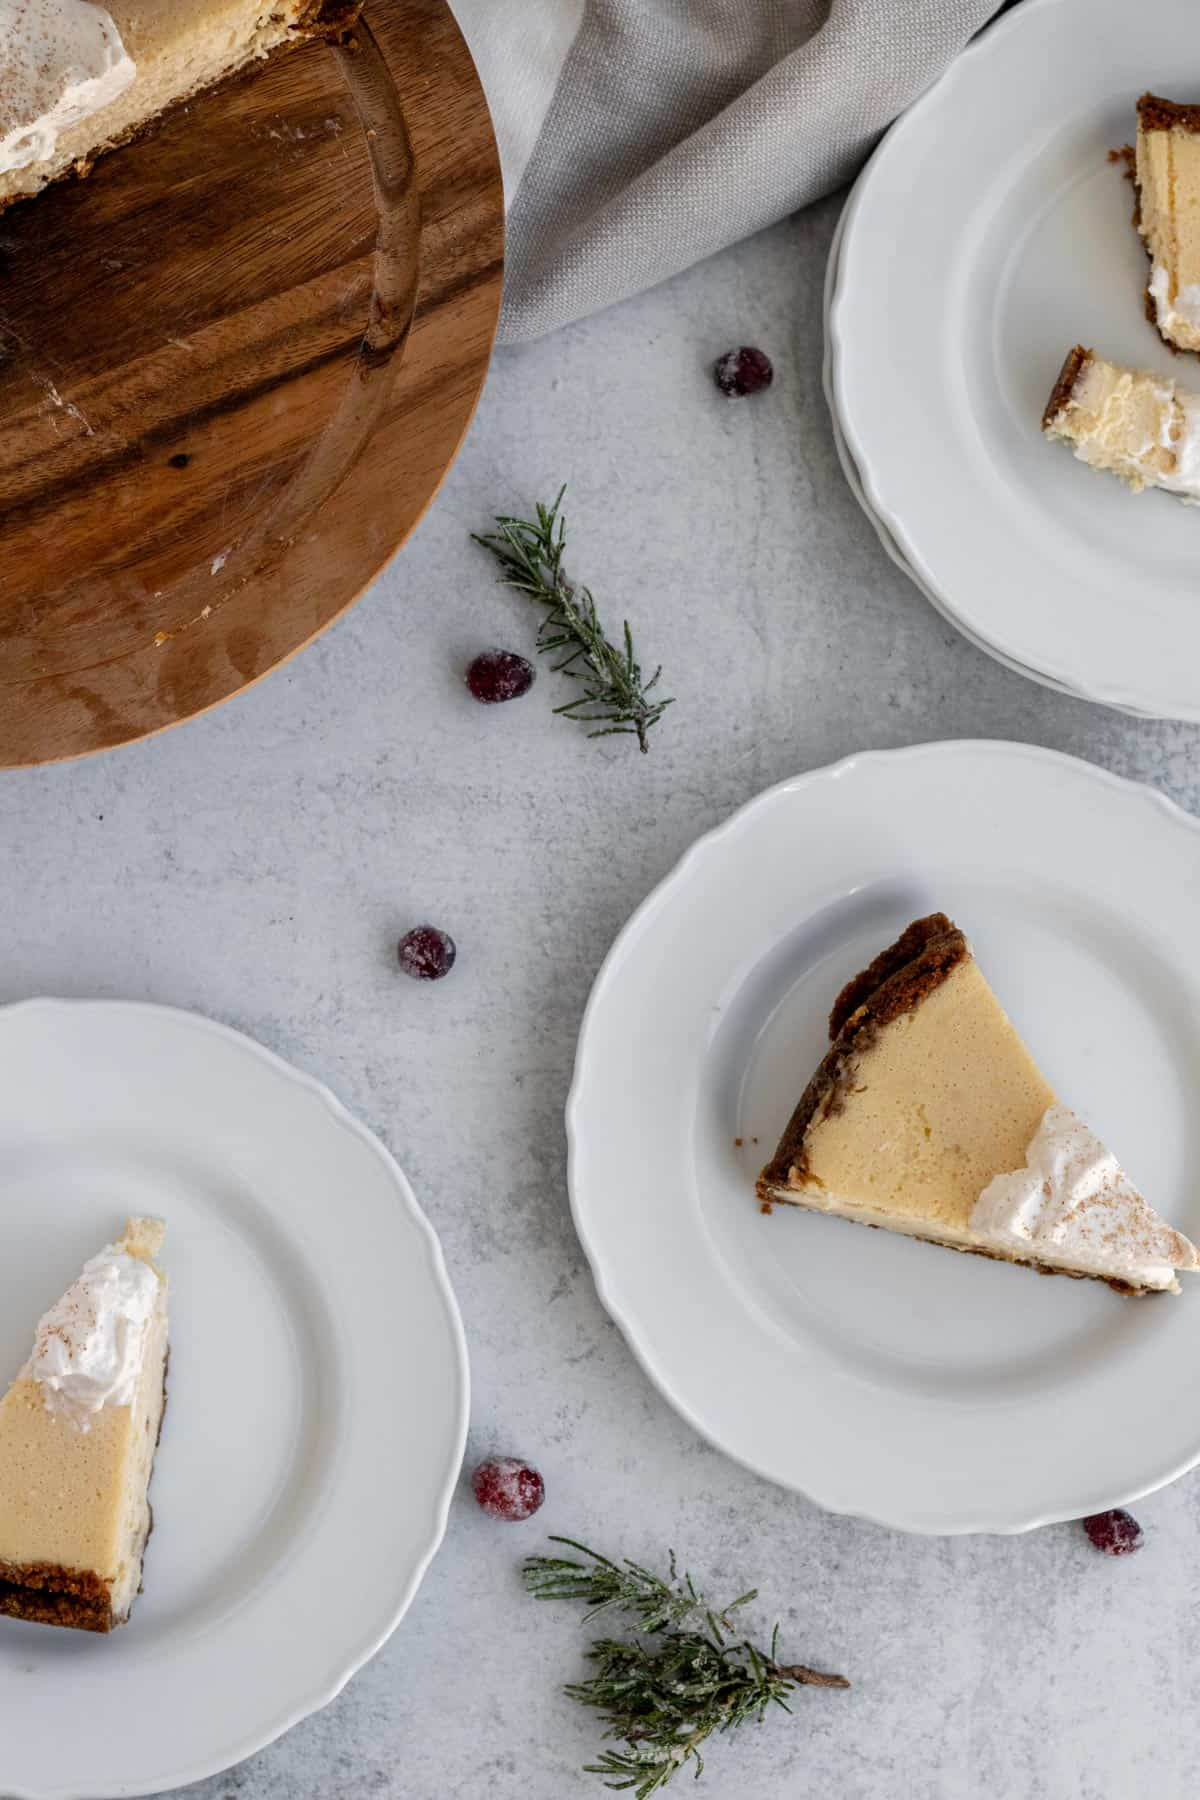 white plates with cheesecake slices on them and scattered rosemary sprigs and cranberries